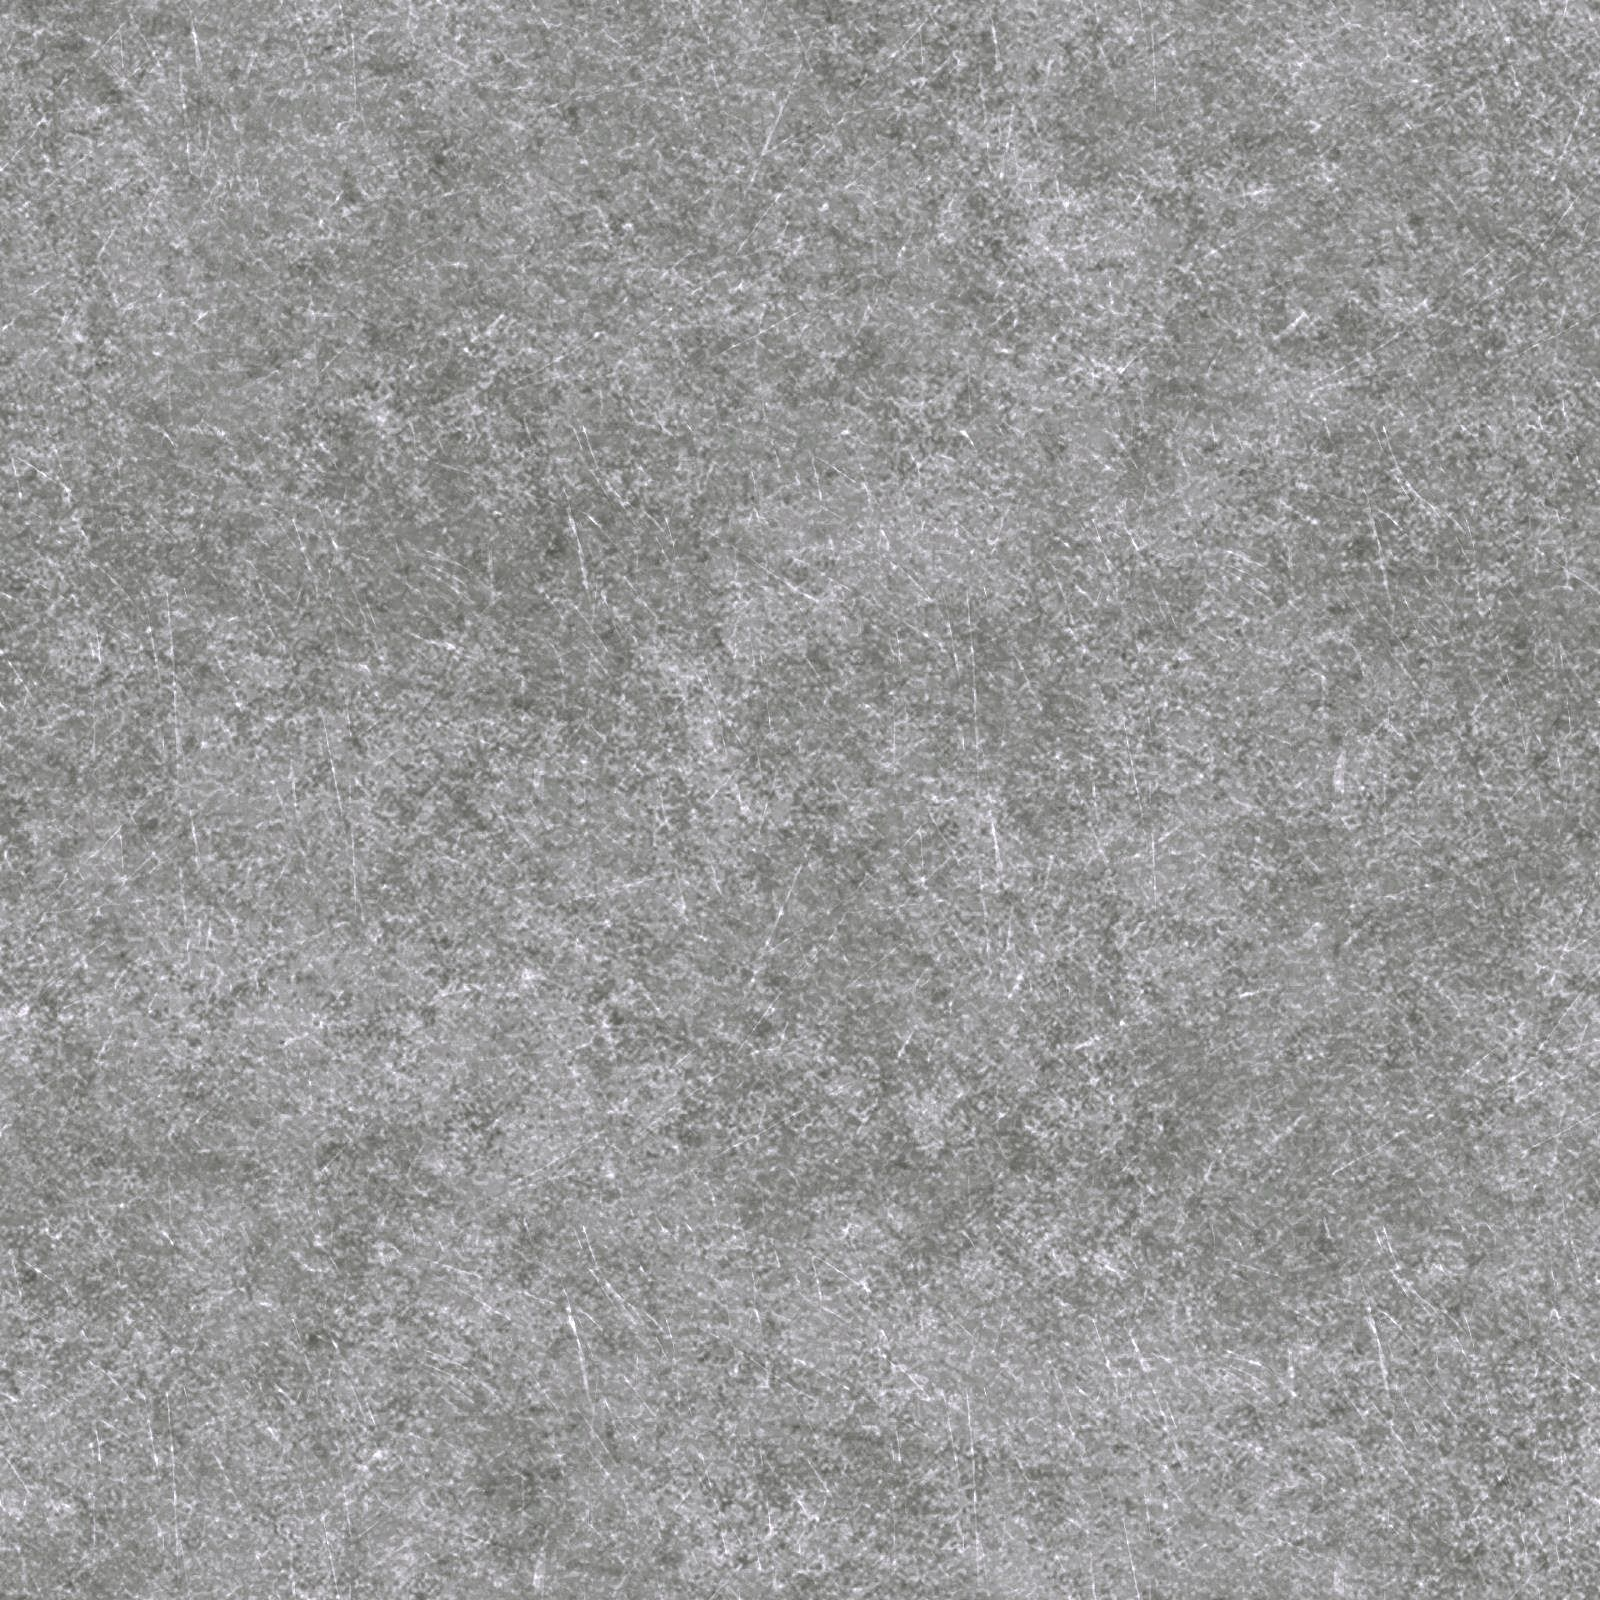 Light gray porcelain floor tile pictures to pin on pinterest - Seamless Metal Texture Rust Texture Dirty Metal Texture